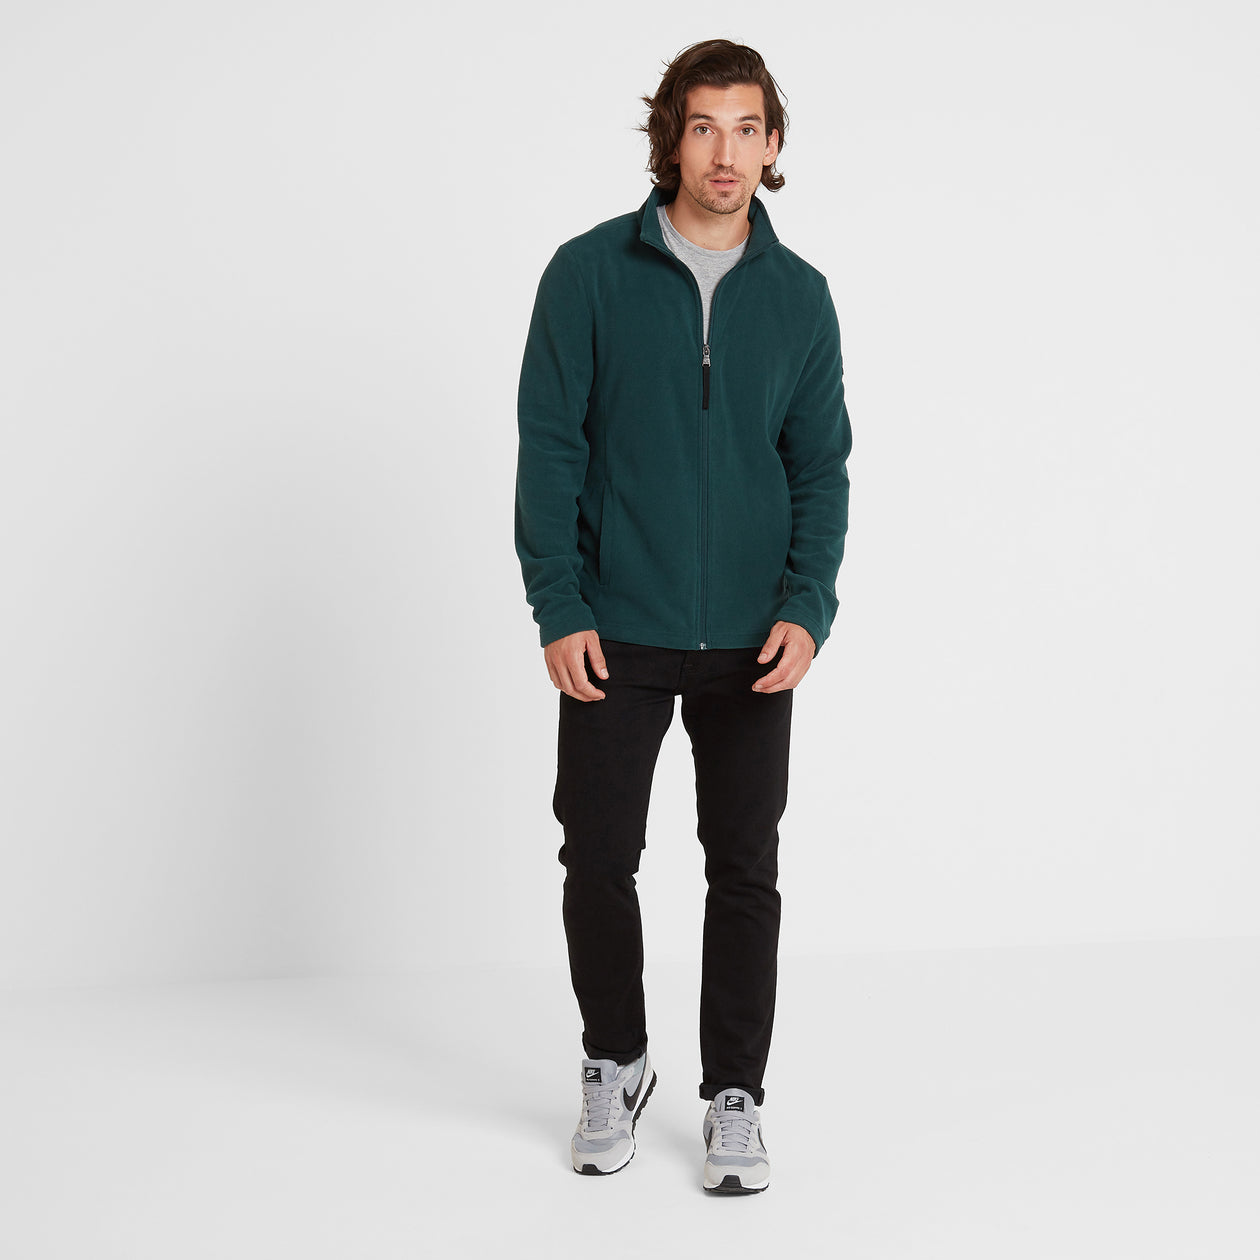 Shire Mens Fleece Jacket - Forest image 4